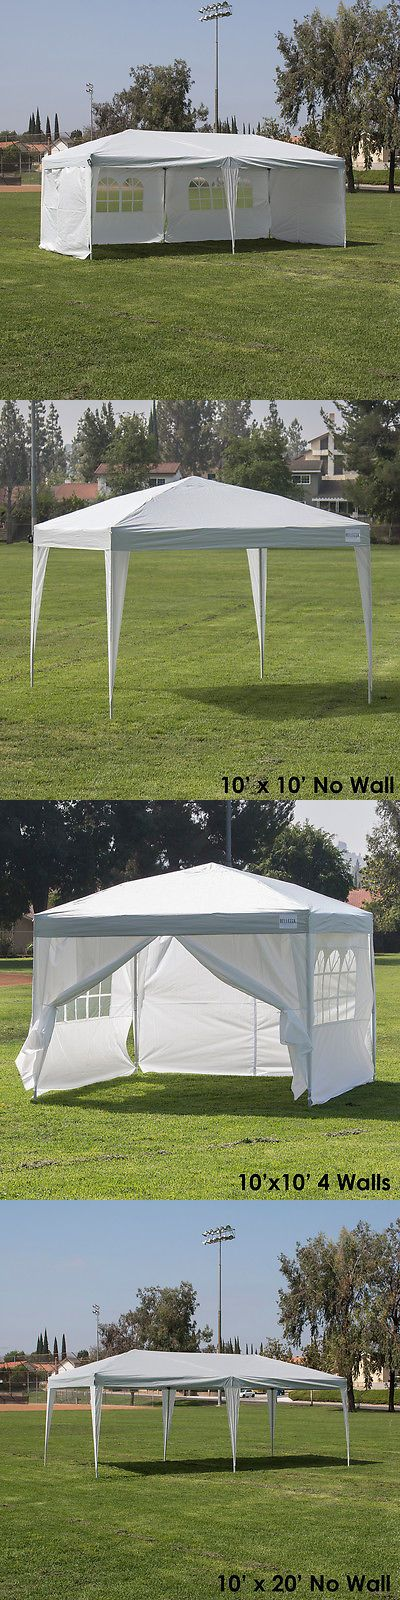 Awnings and Canopies 180992: 10X10 10X20 Easy Pop Up Wedding Party Tent Fold Gazebo Camp Canopy W Side +Bag -> BUY IT NOW ONLY: $159.99 on eBay!